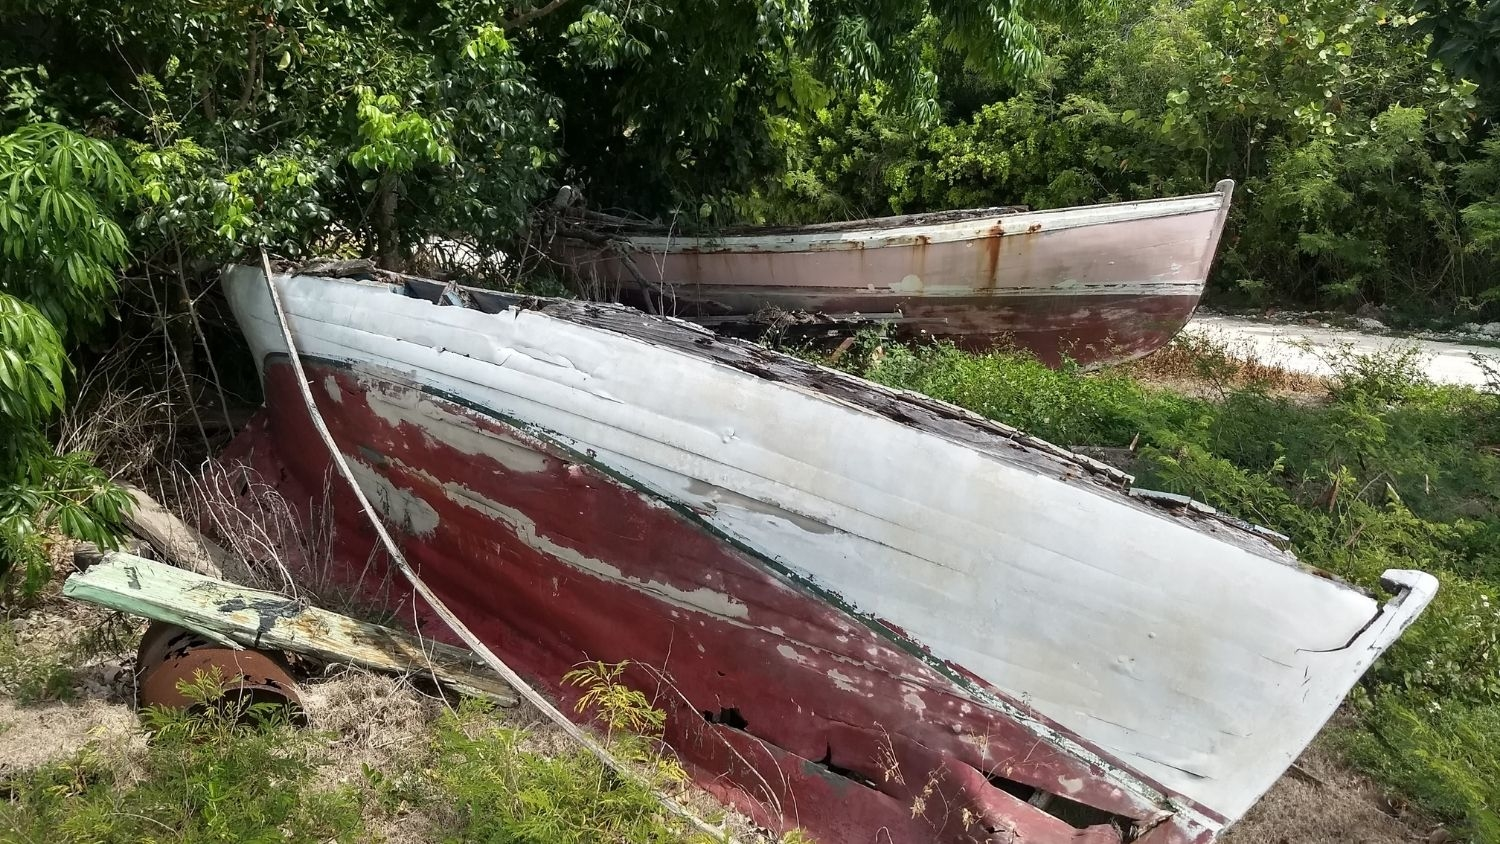 Wooden boats on Andros, the largest island in the Bahamas - Study Tracks Changes to Fishing, Culture on Island in Bahamas - Forestry and Environmental Resources NC State University